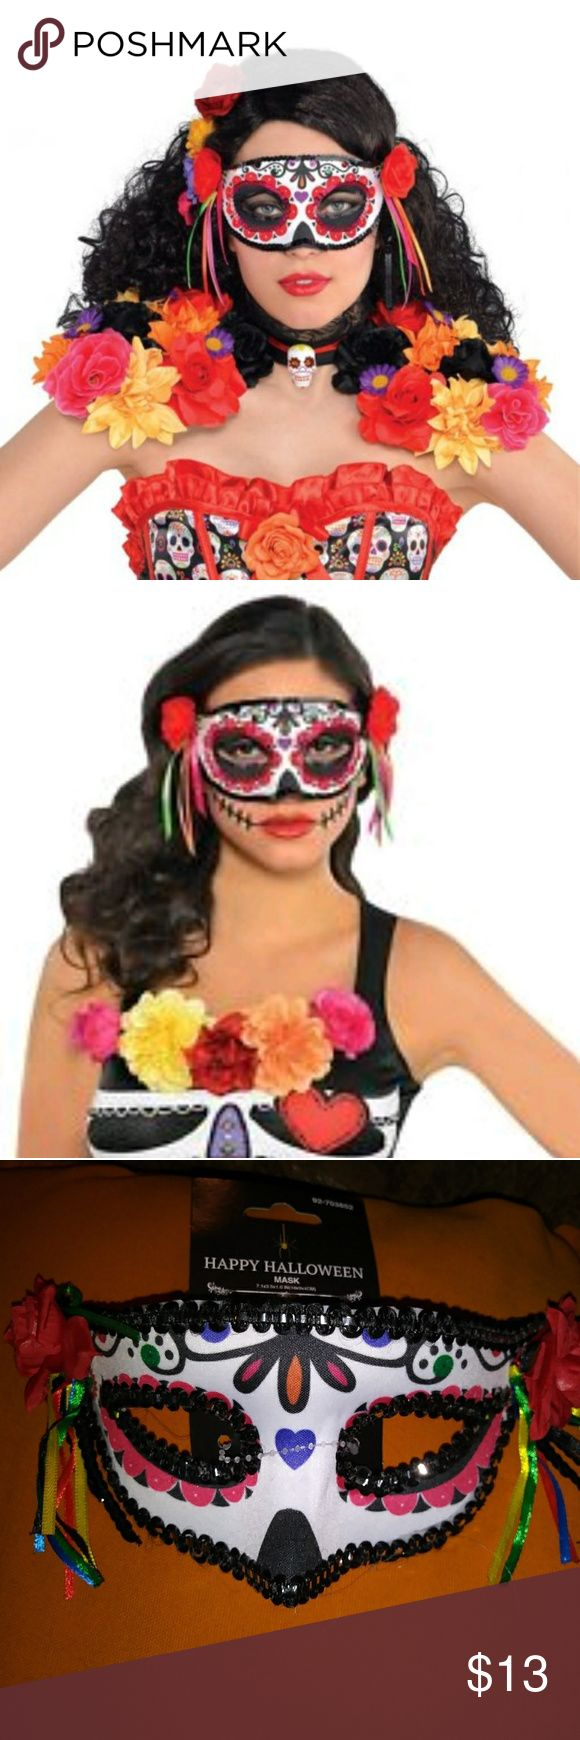 Day of The Dead Sugar Skull Mask Sugar Skull Mask Adult Day of The Dead Dia de Los Muertos Halloween Costume accessory  The Day of the Dead masquerade mask includes a sugar skull design mask with fabric roses and hanging ribbons at the sides.  Our Dia de Los Muertos costume mask comes in one size to fit most adult women and teen girls. Accessories